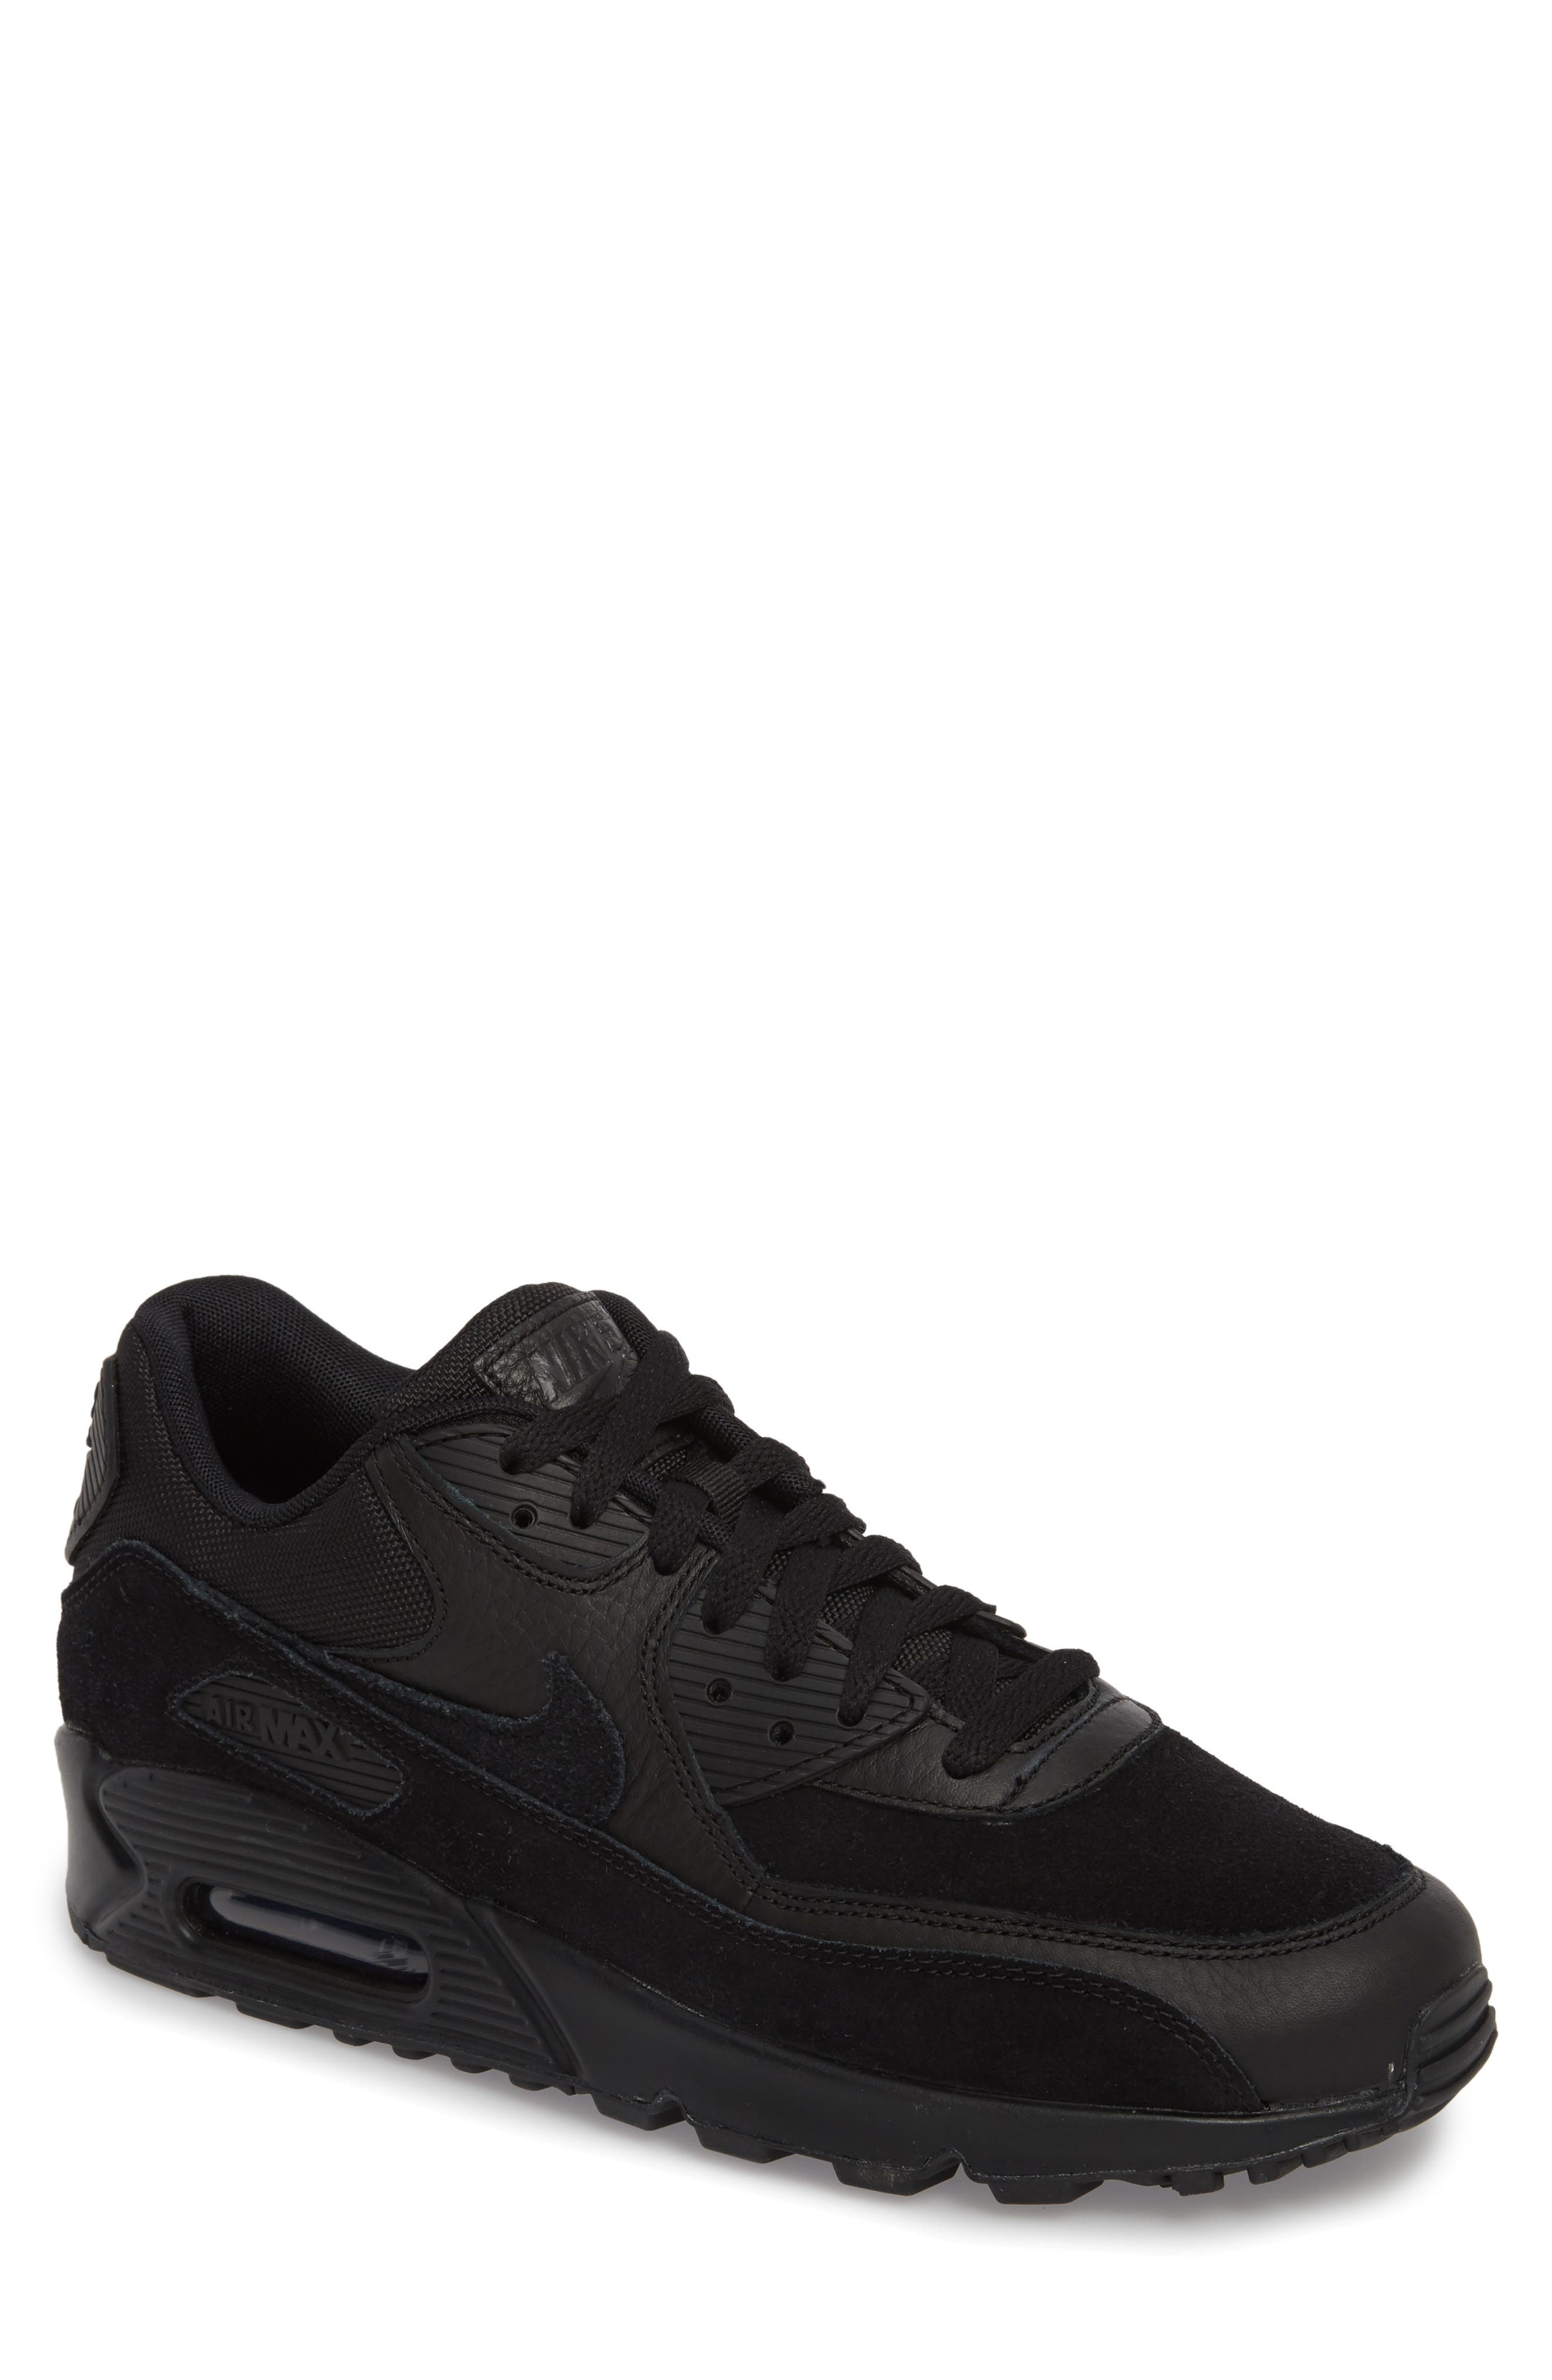 Nike Air Max 90 Premium Sneaker (Men)